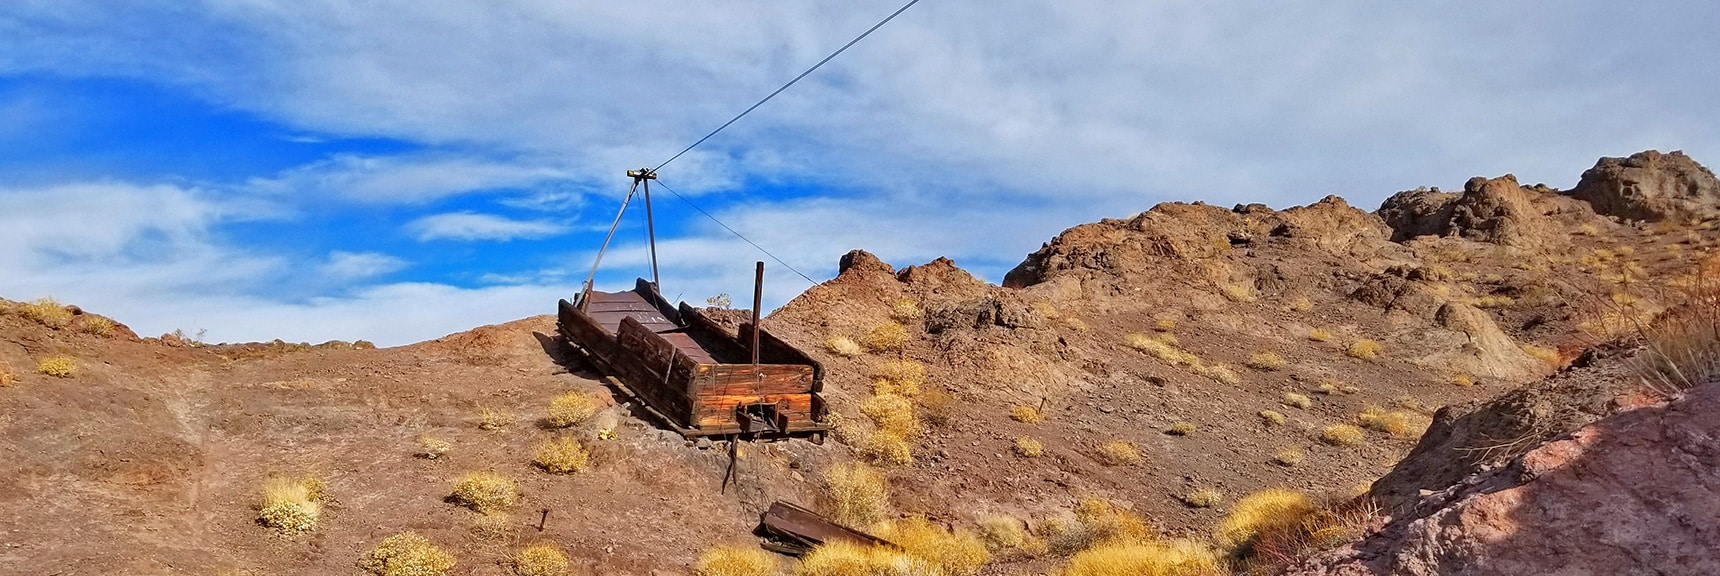 Old Mining Container on Pulley | Arizona Hot Spring | Liberty Bell Arch | Lake Mead National Recreation Area, Arizona